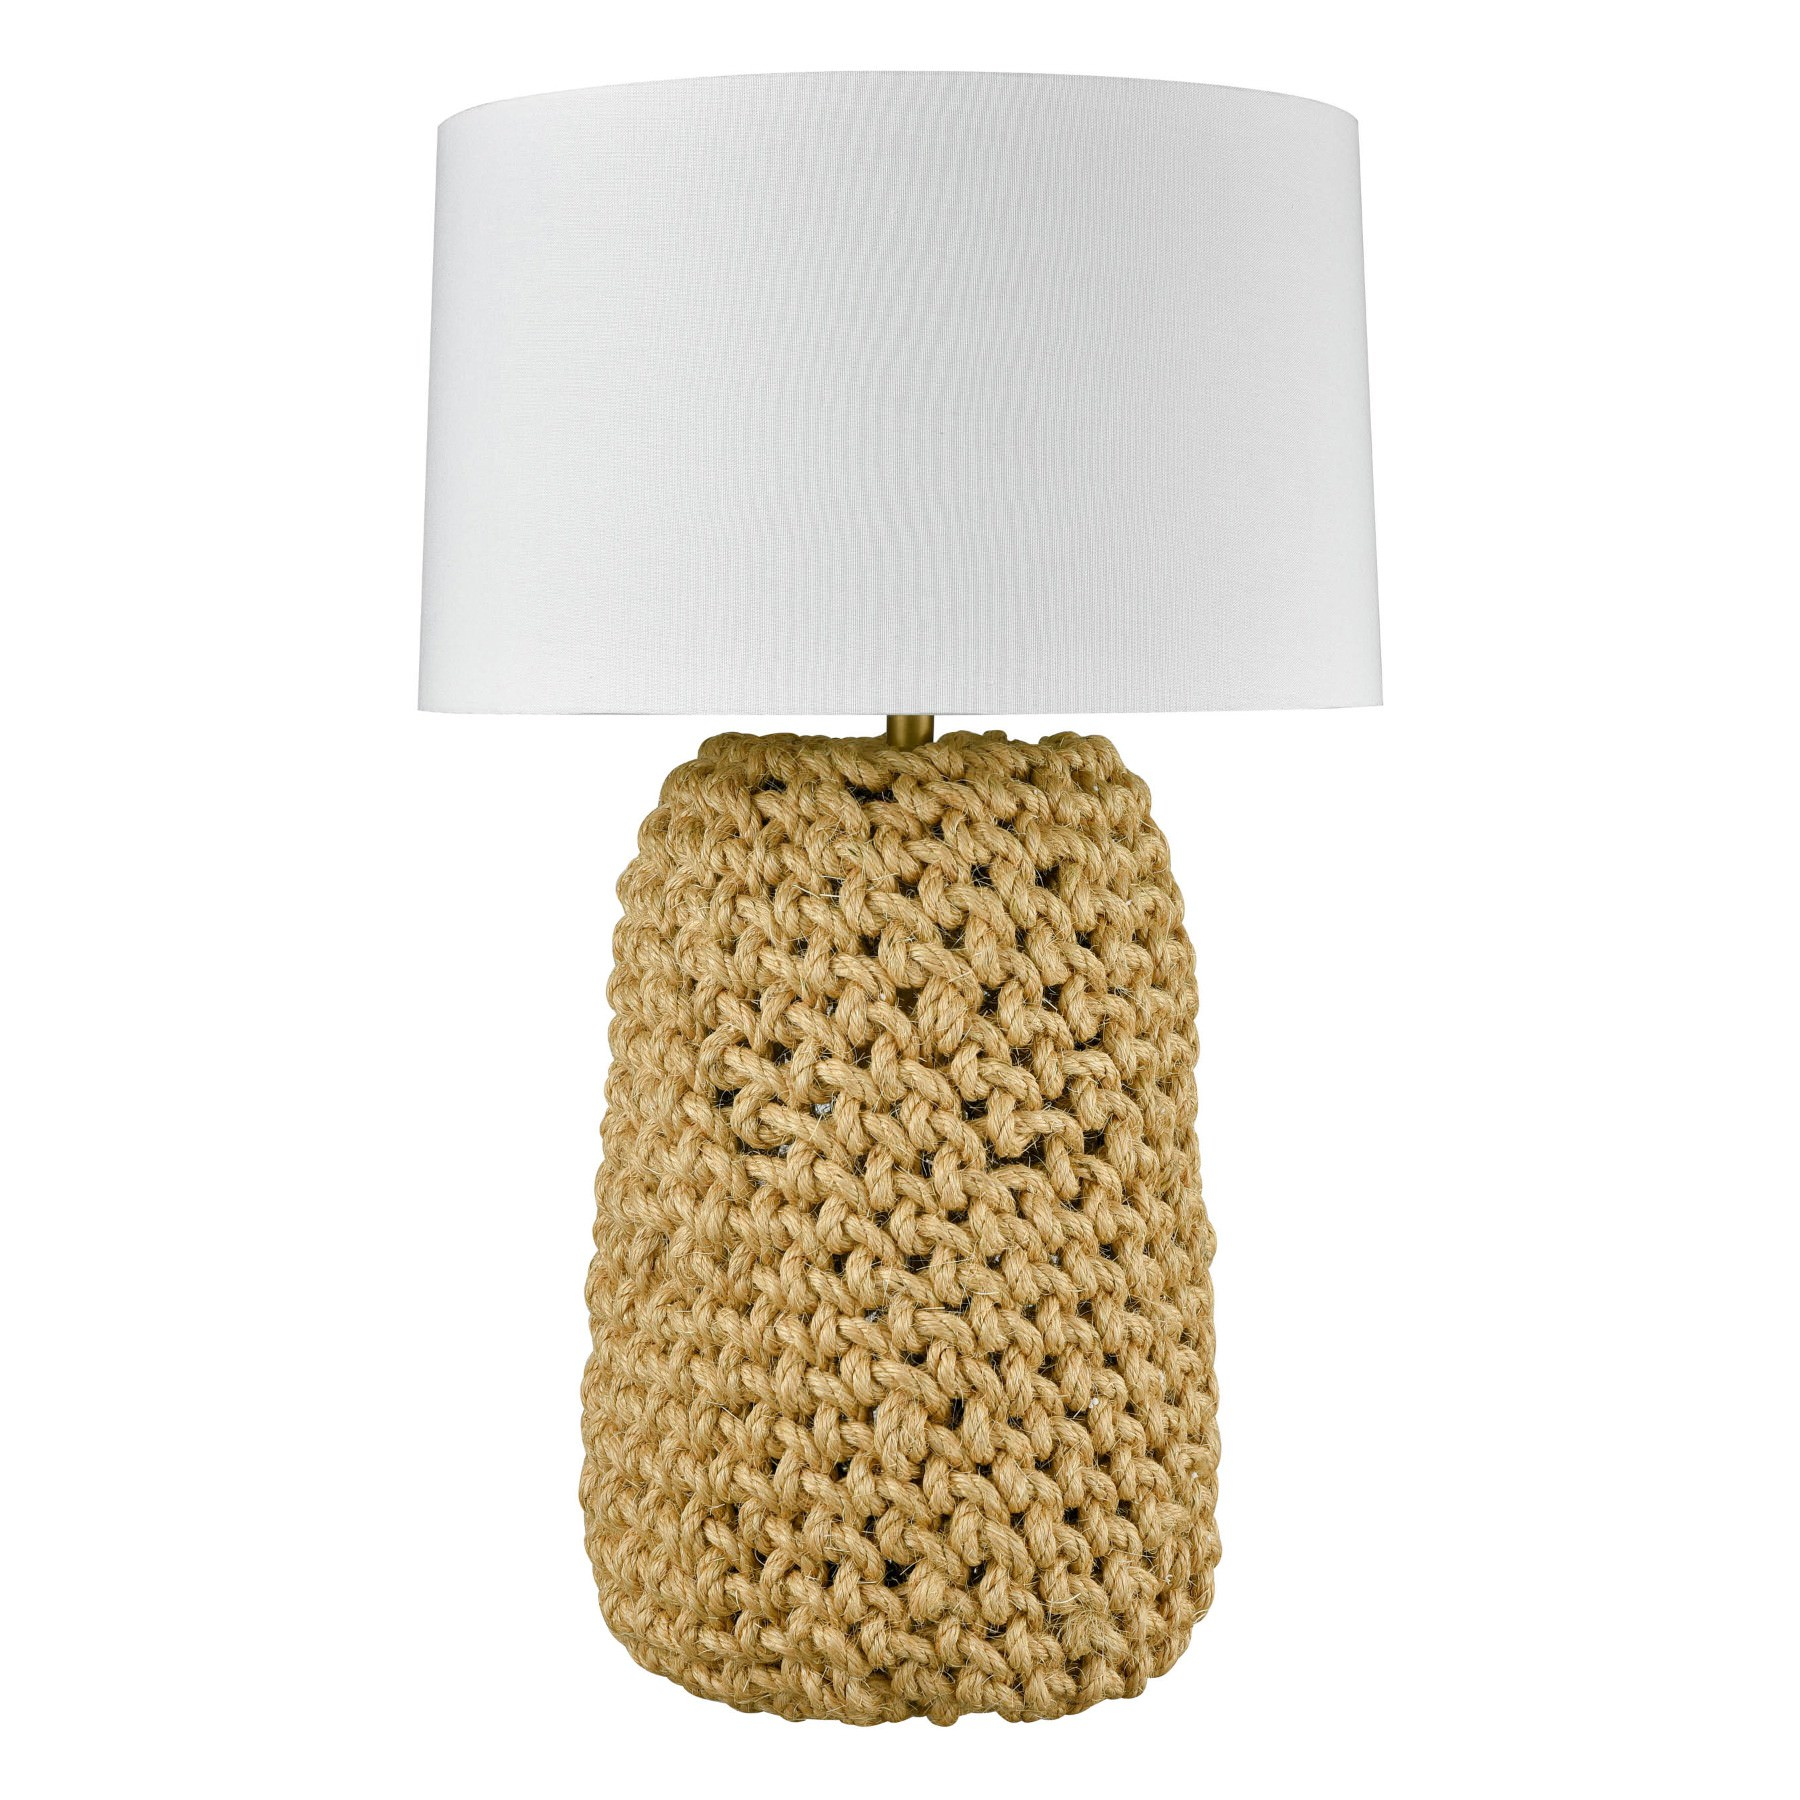 Ioana Knotted Rope Base Table Lamp, Large